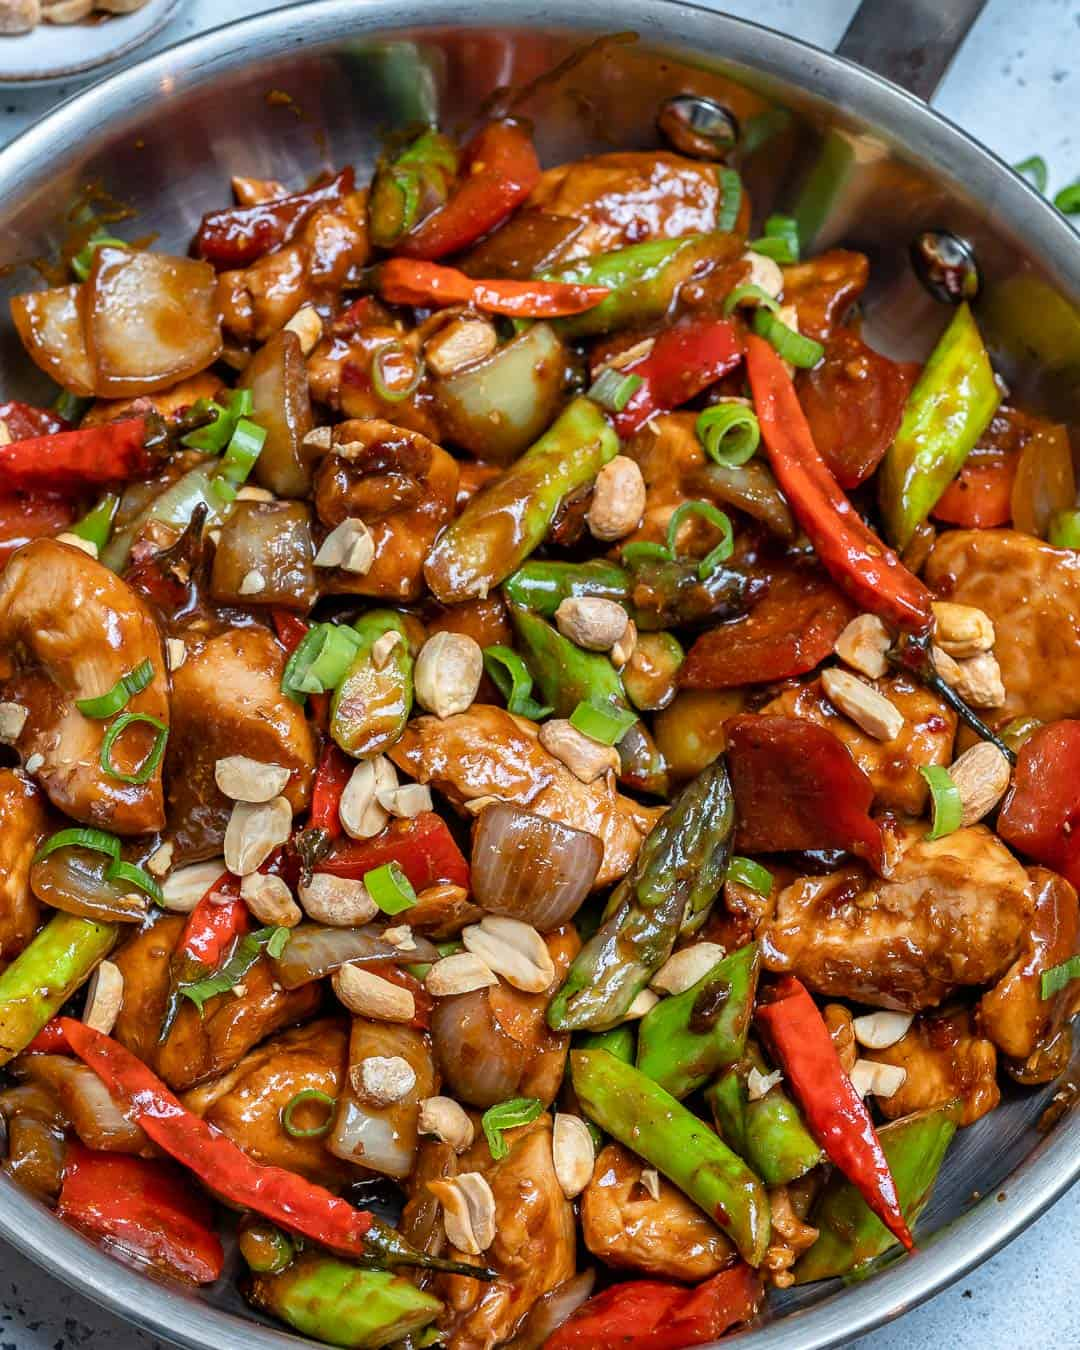 healthier take to the classic kung pao recipe